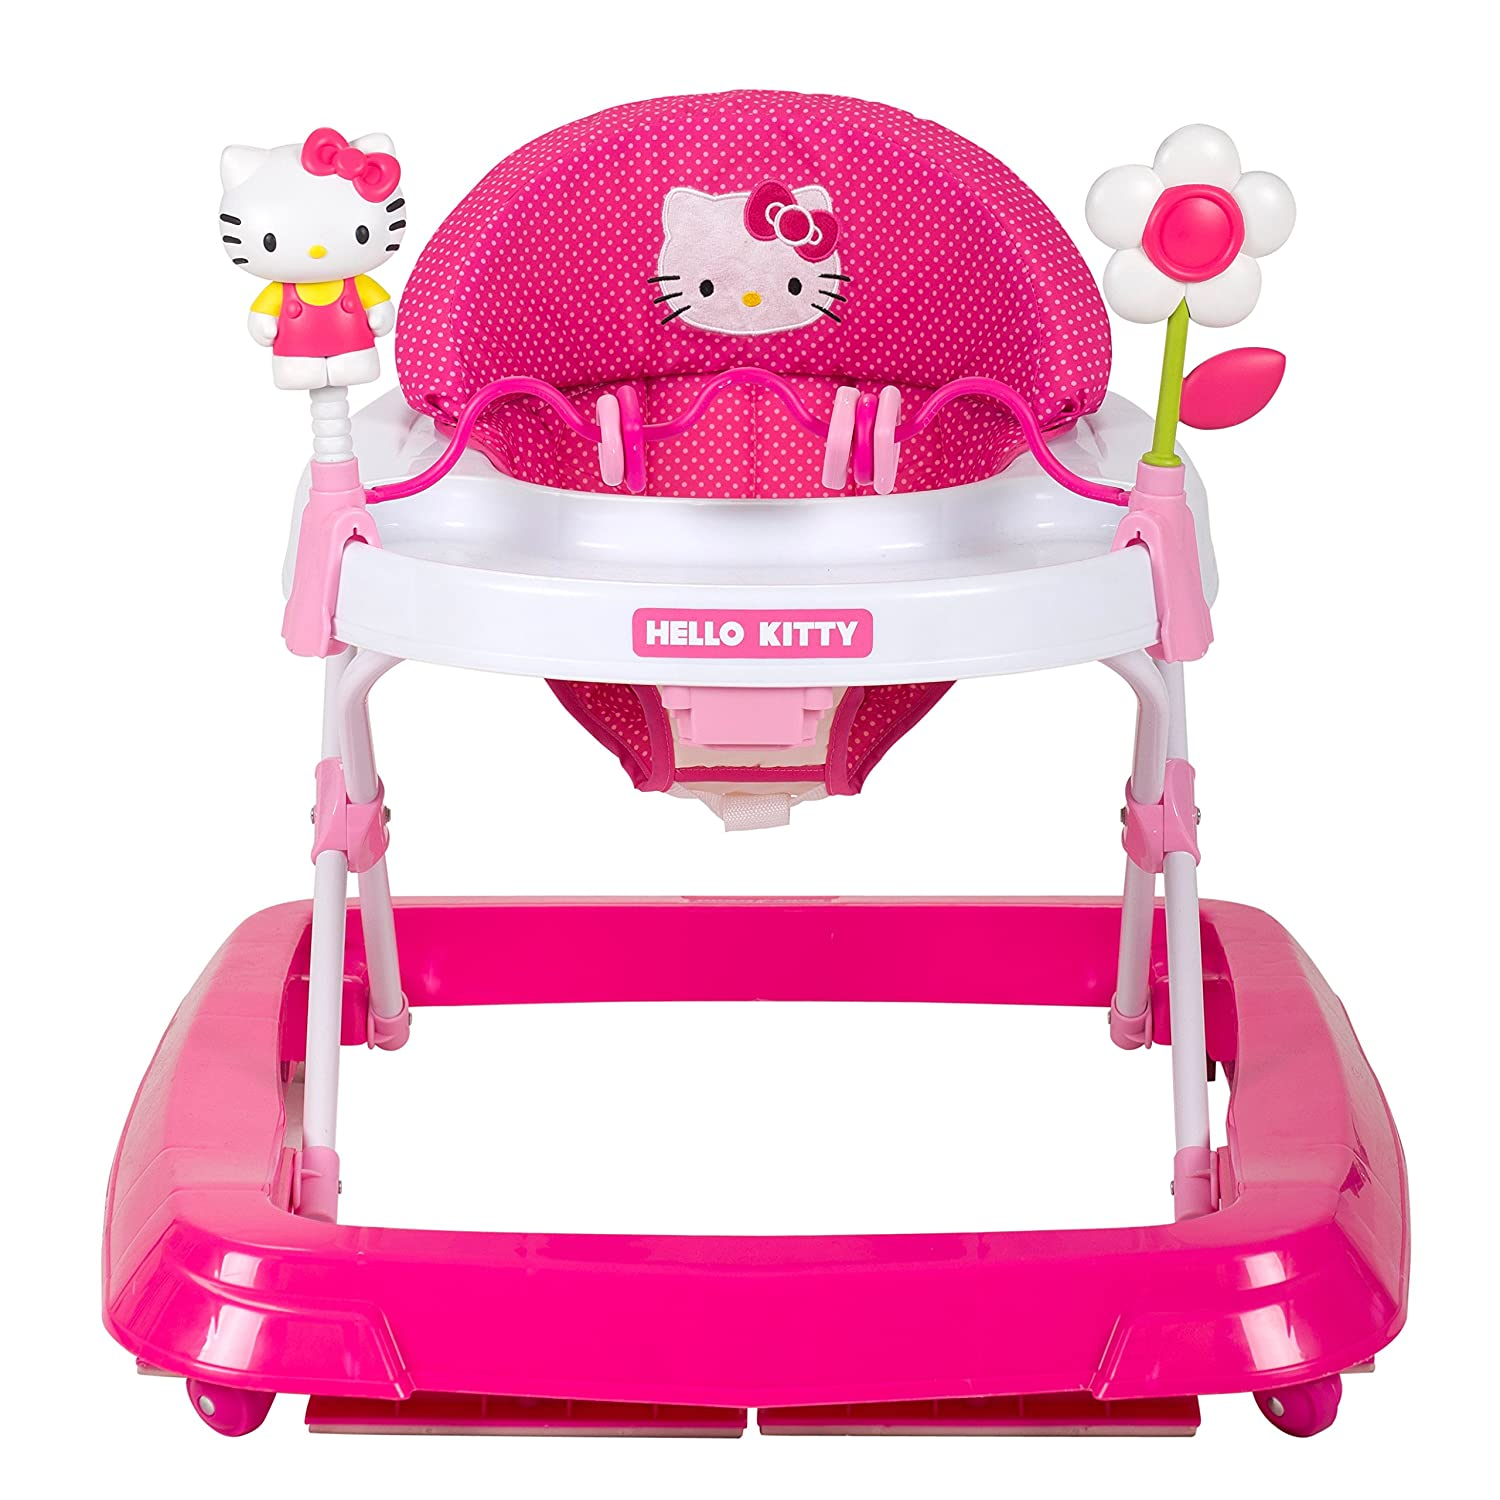 Hello Kitty Toys R Us : Hello kitty suv volt battery powered ride on